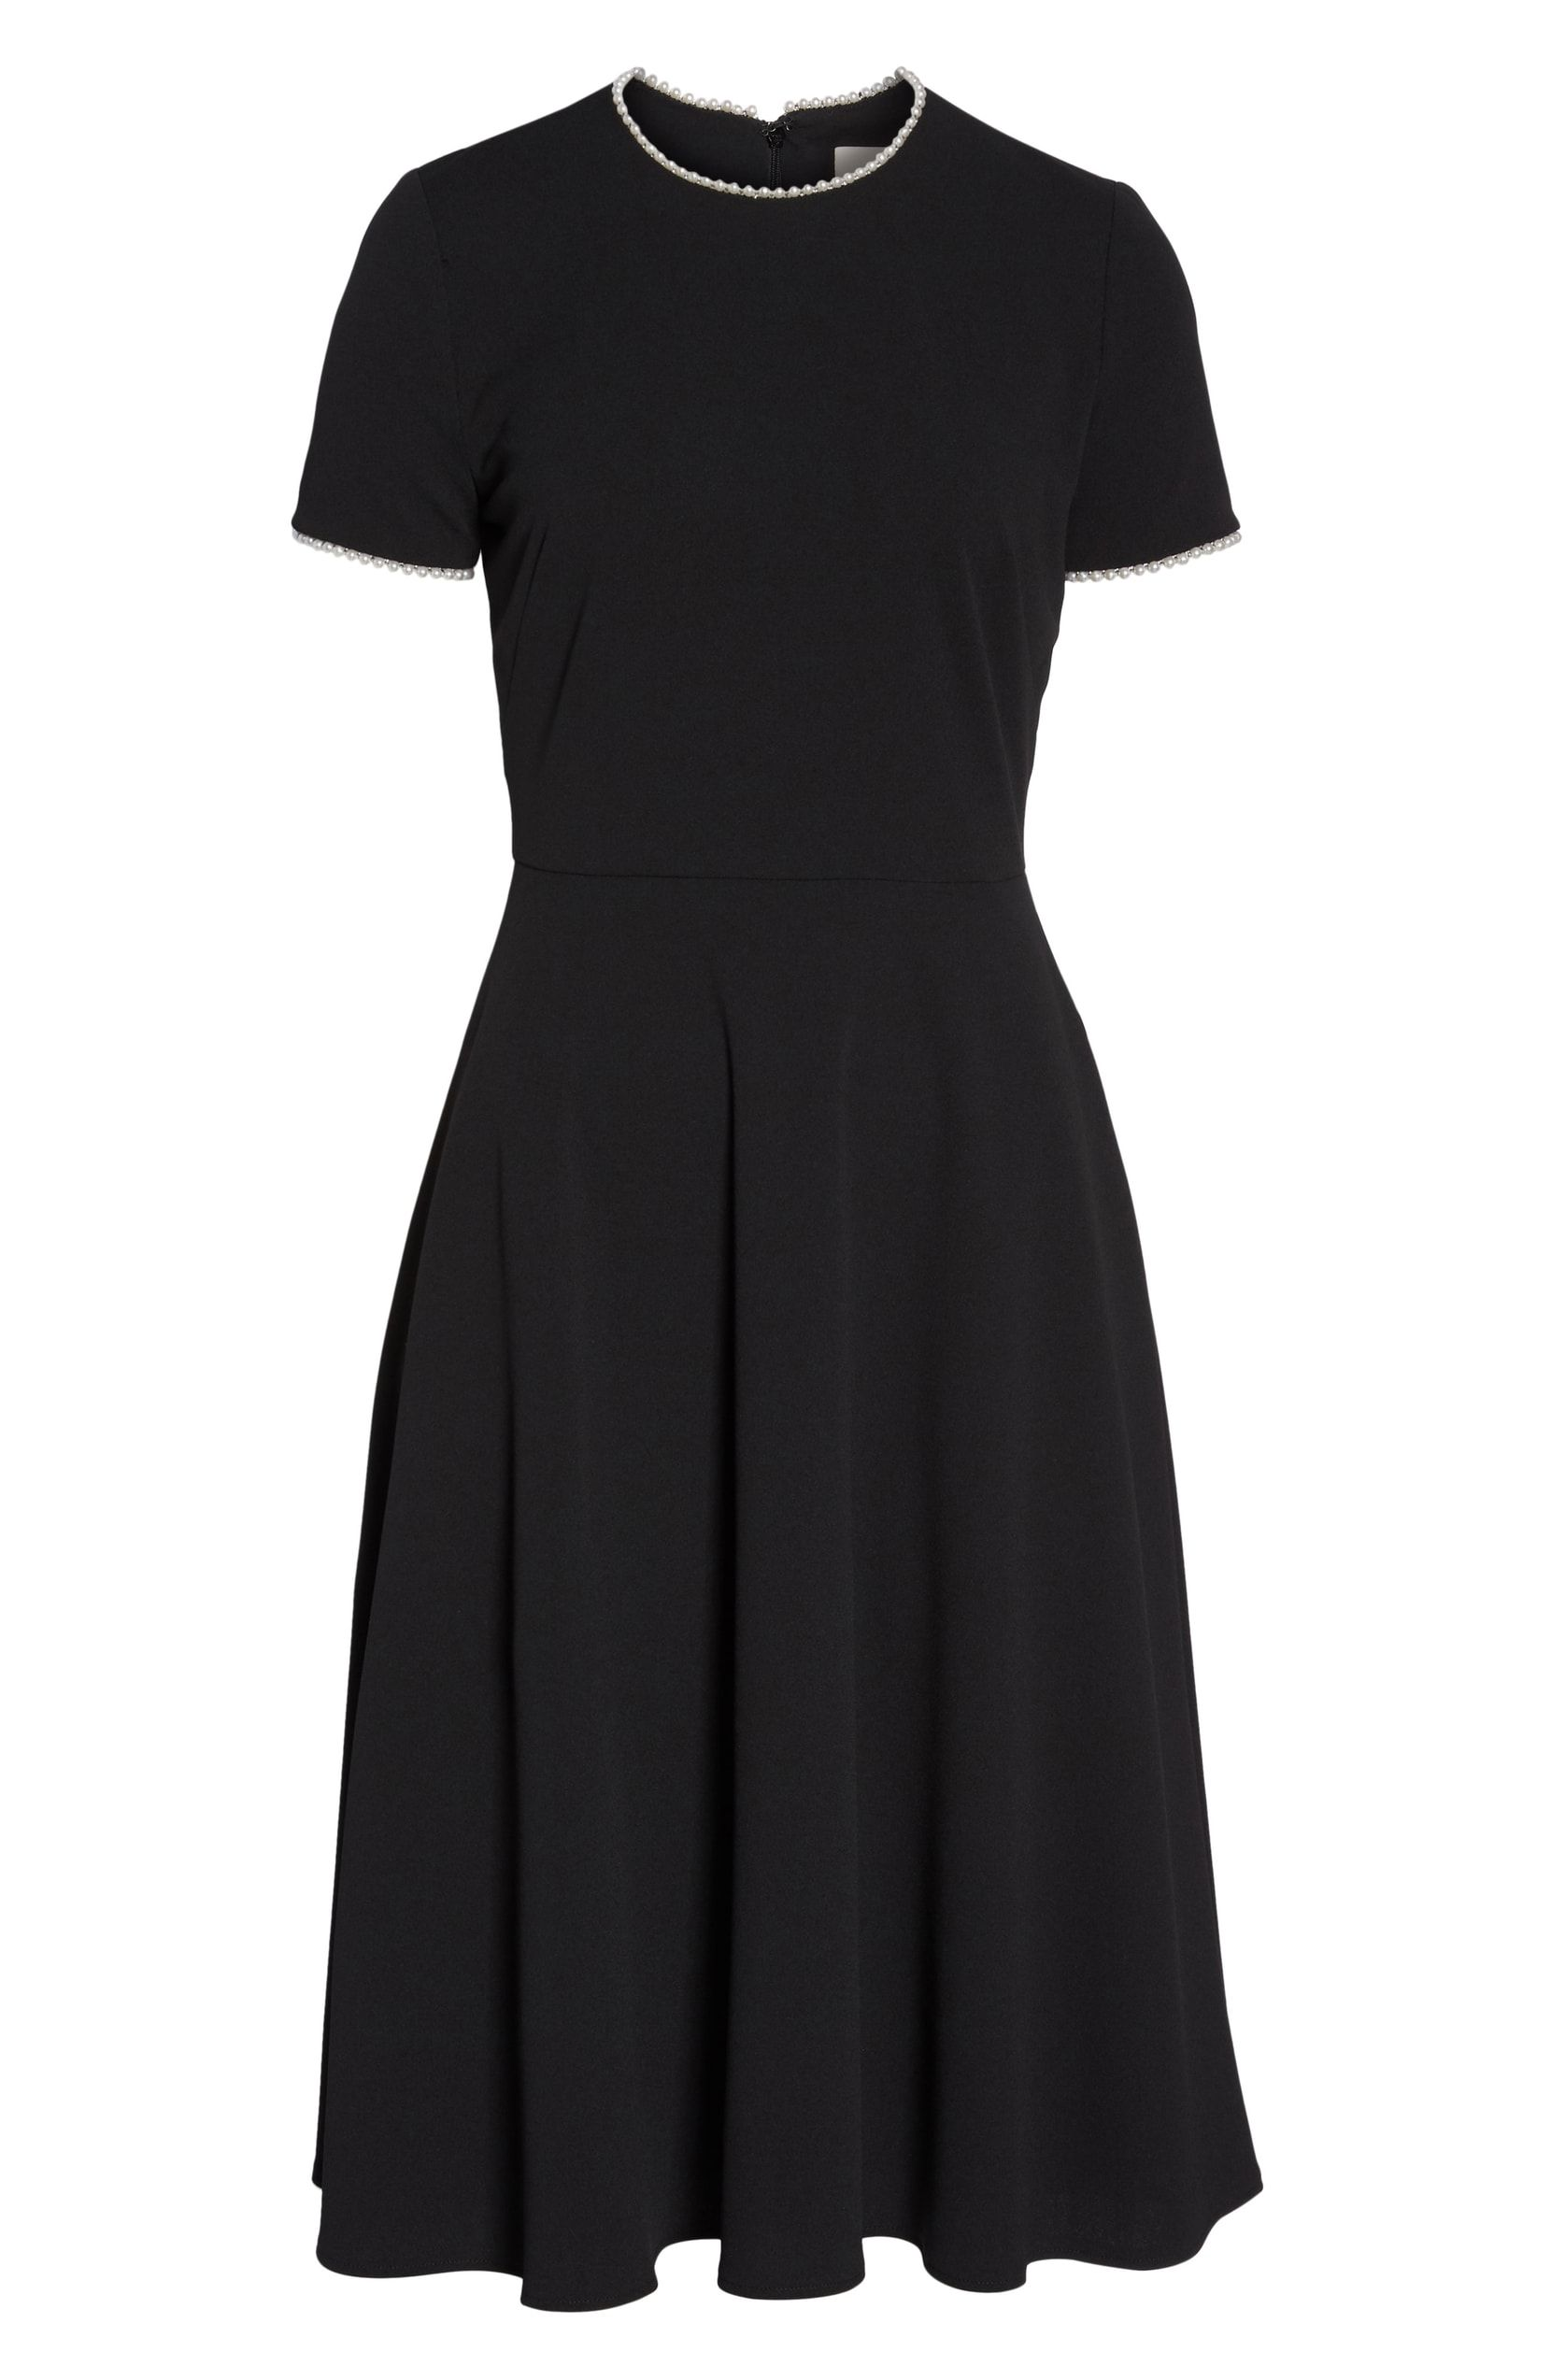 e3d9b74d486b Gal Meets Glam Collection Victoria Pearly Trim Fit   Flare Dress - Black